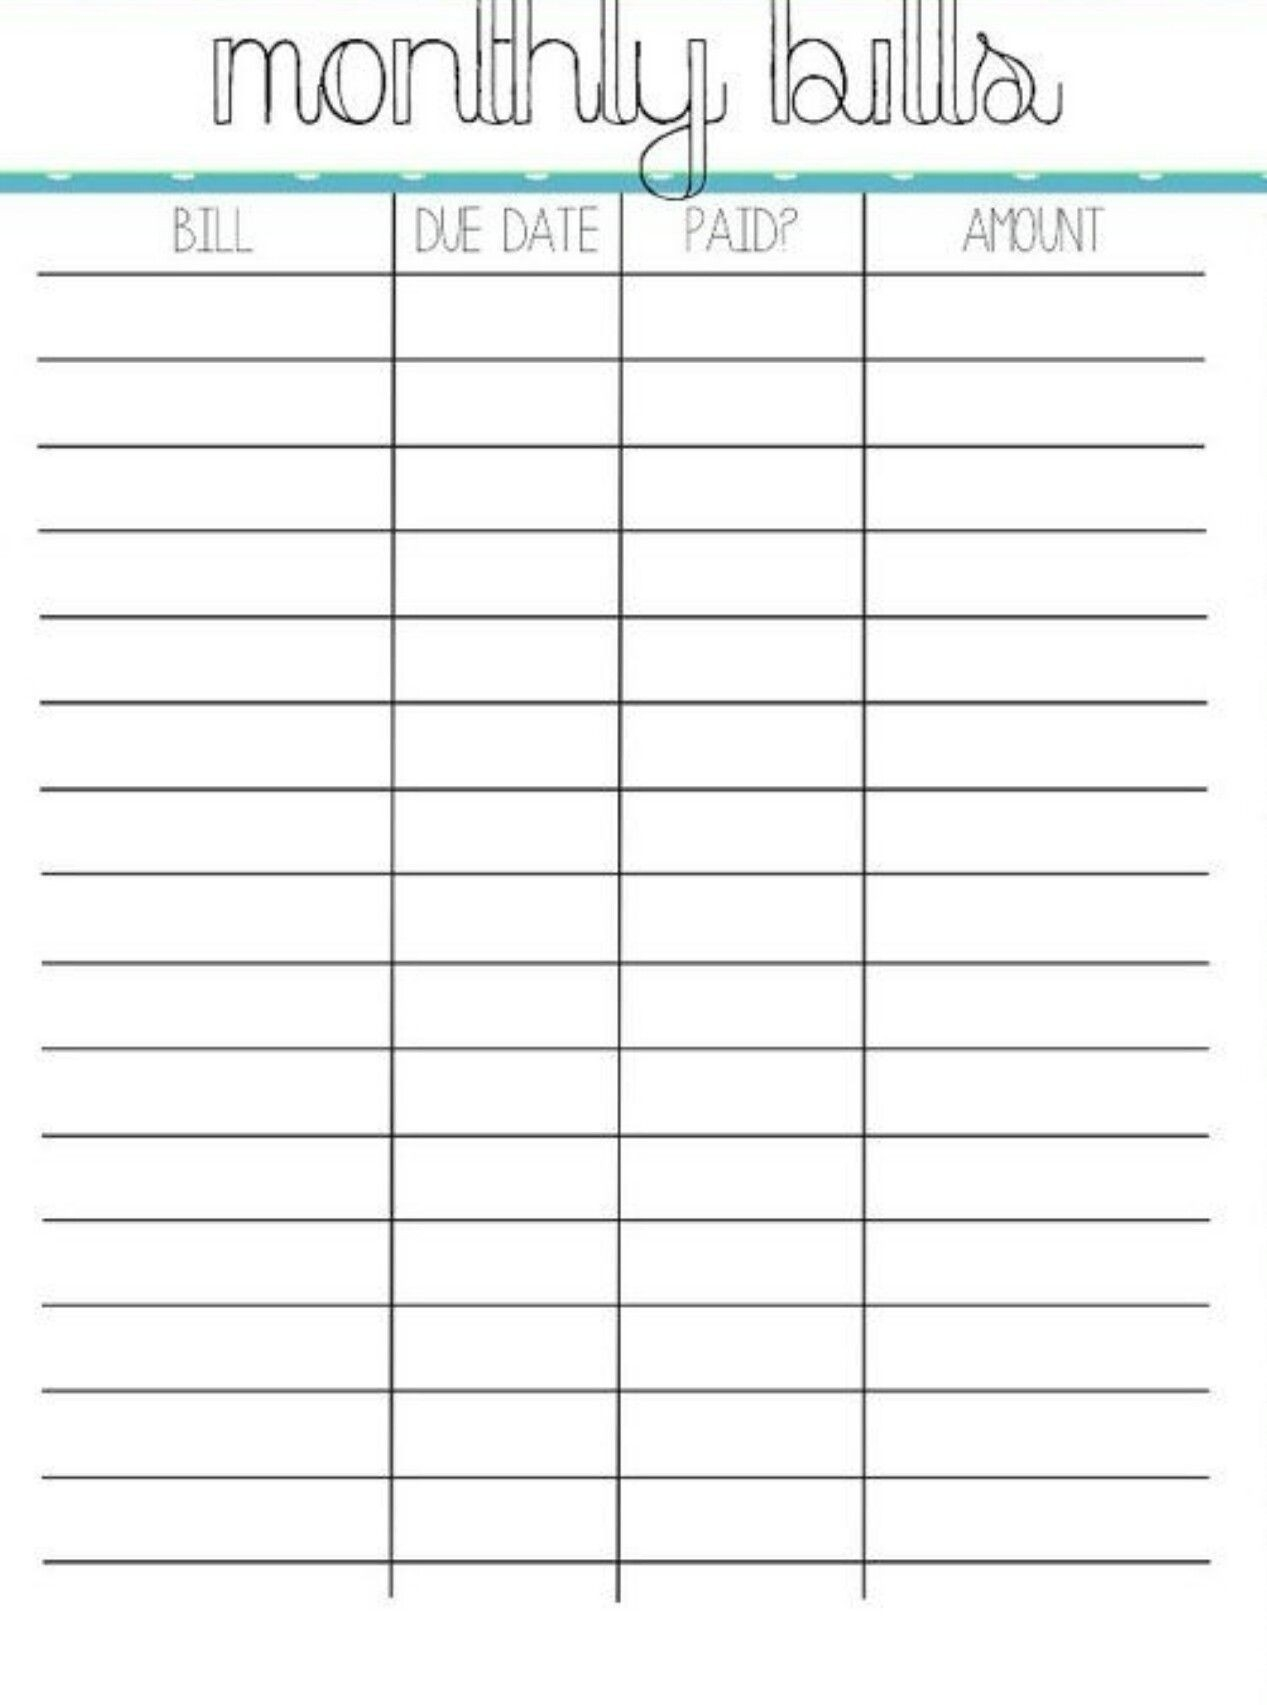 Pin By Crystal On Bills   Organizing Monthly Bills, Bill-Free Template For Bills Due Monthly